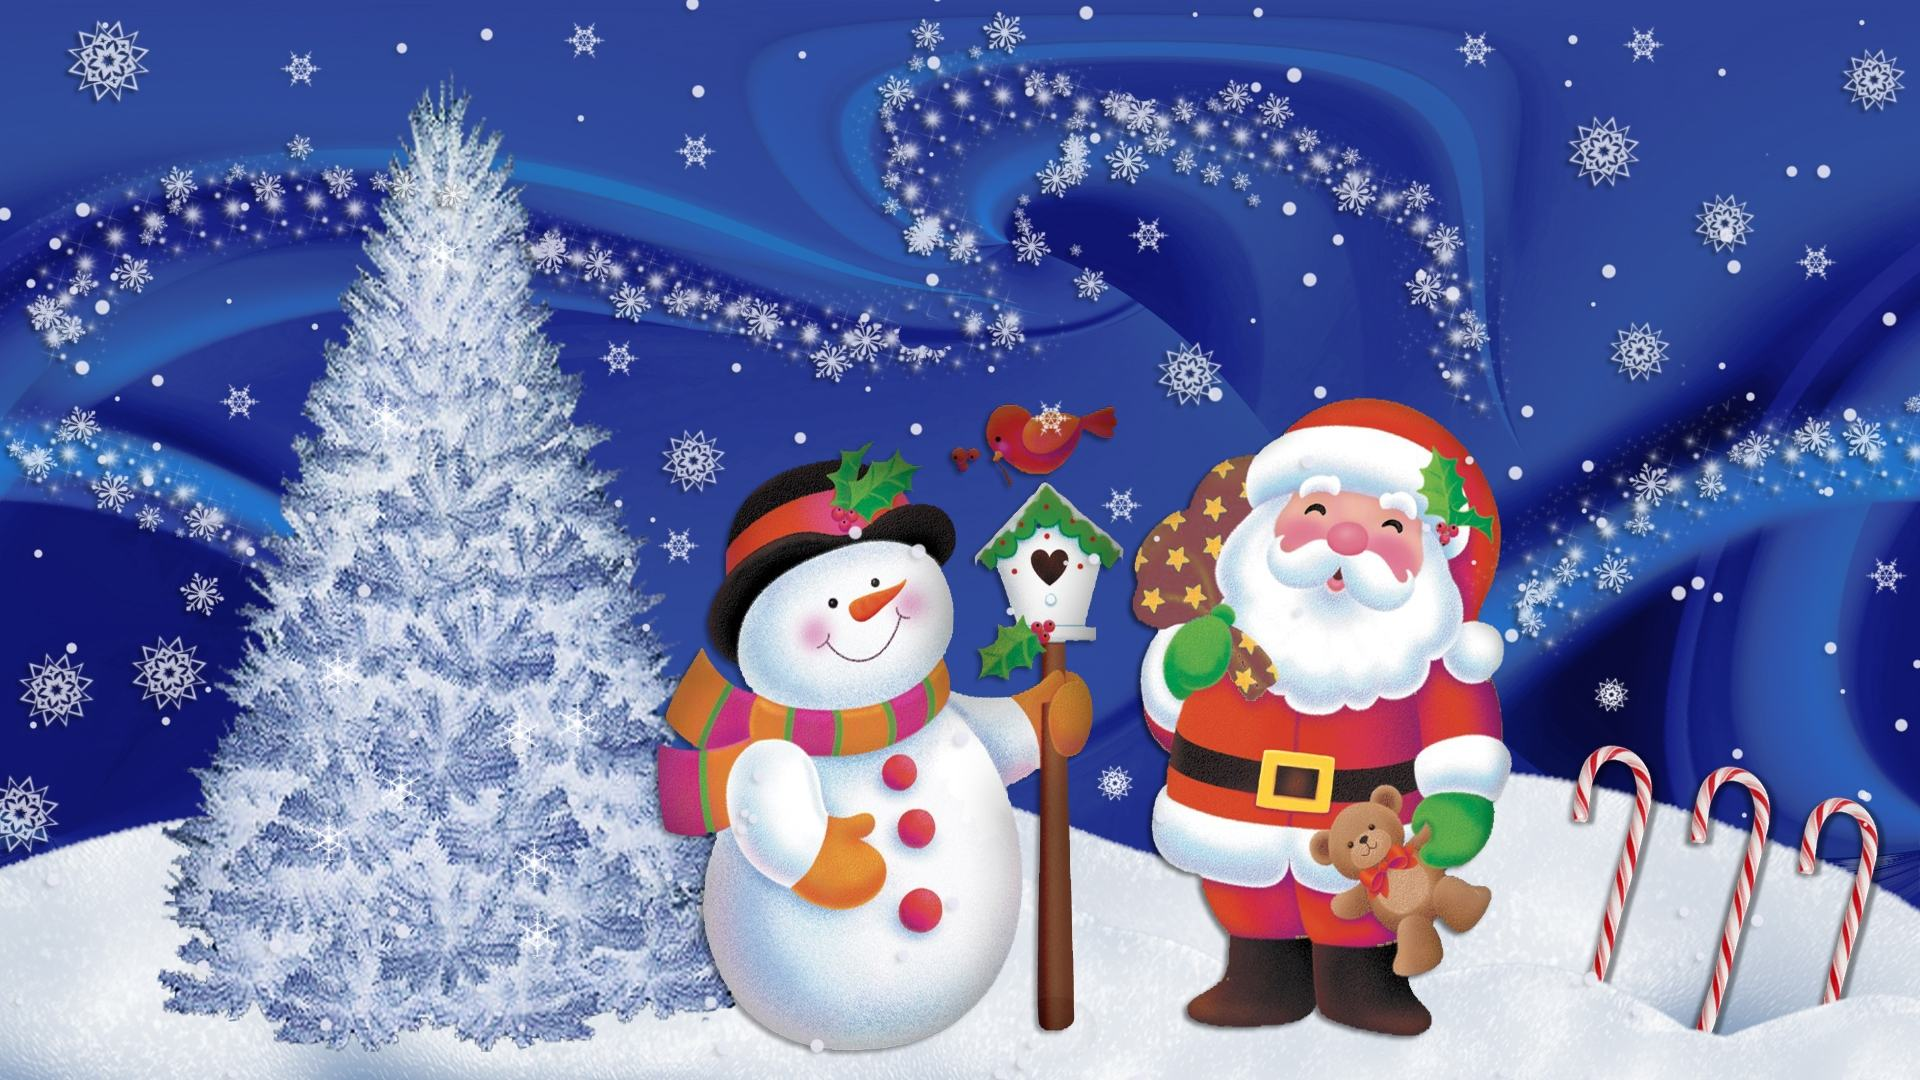 animated christmas wallpaper 24 - Animated Christmas Scenes